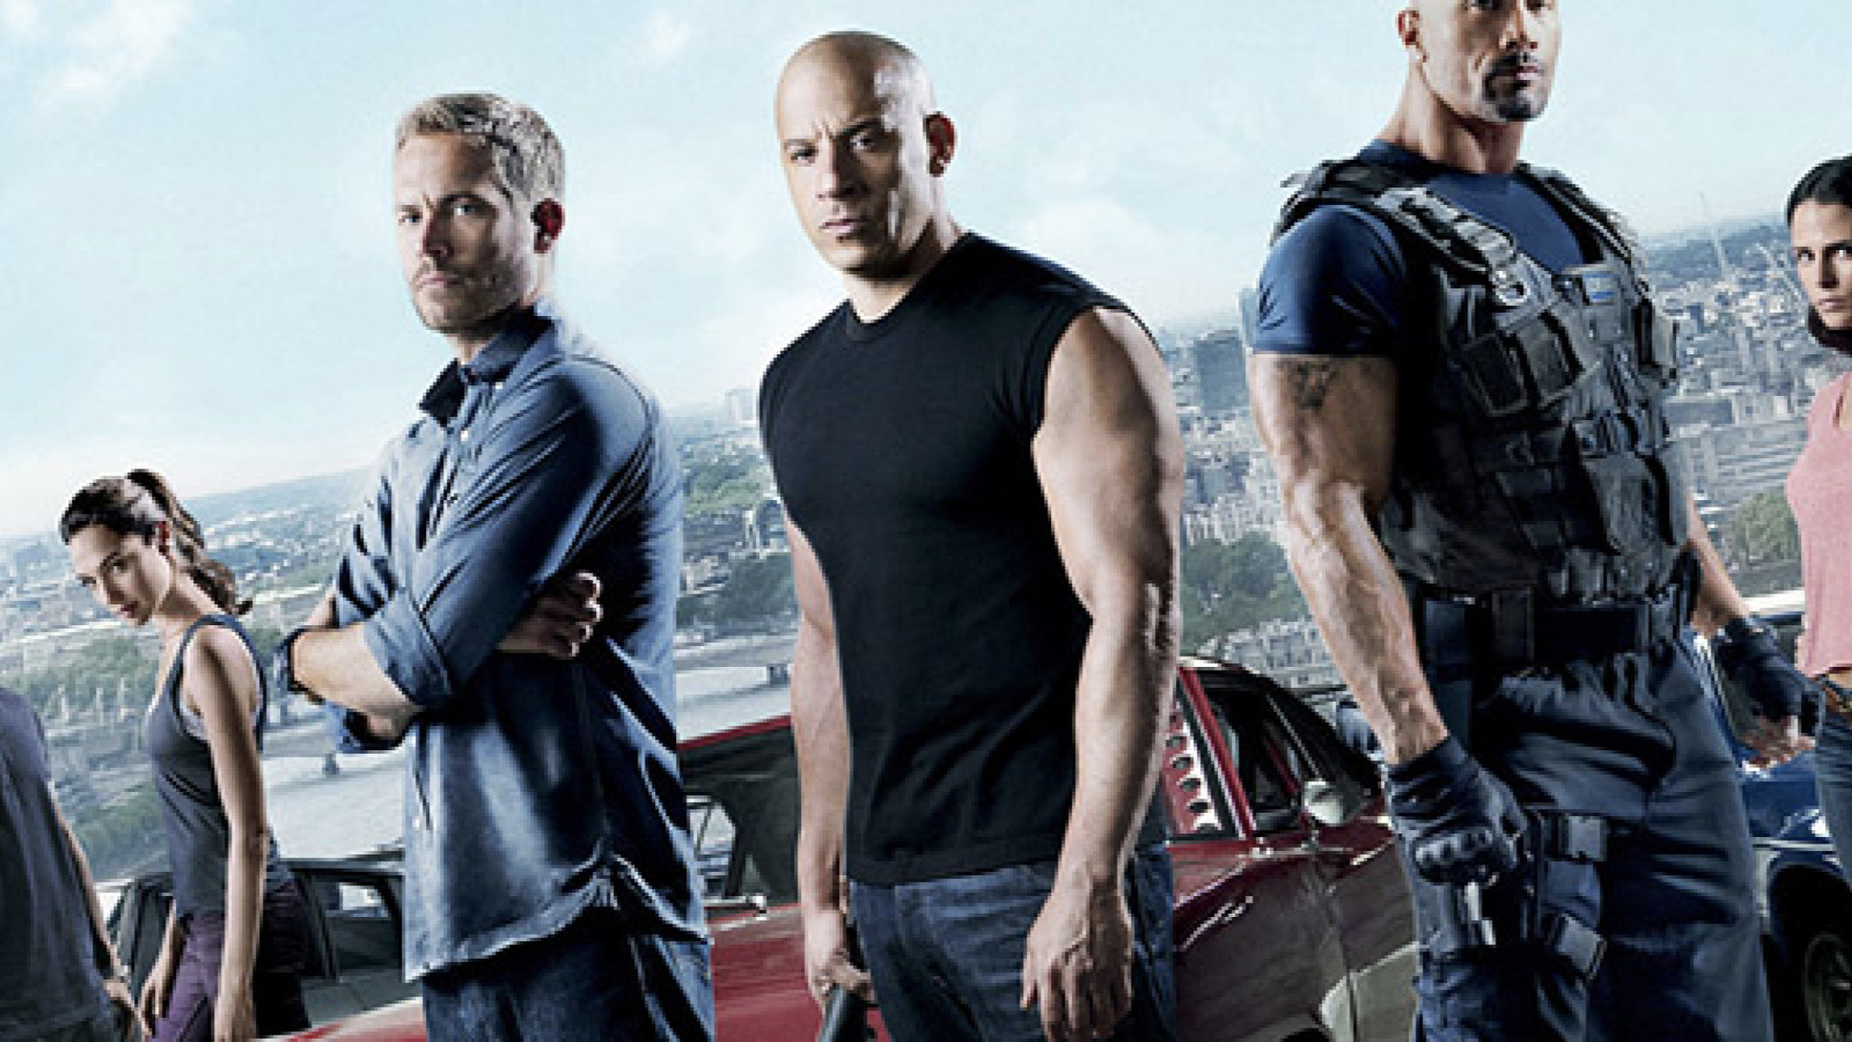 I Went To The Premiere Of 'Fast & Furious 6'. Here's What You Need To Know.  THOUGHT CATALOG